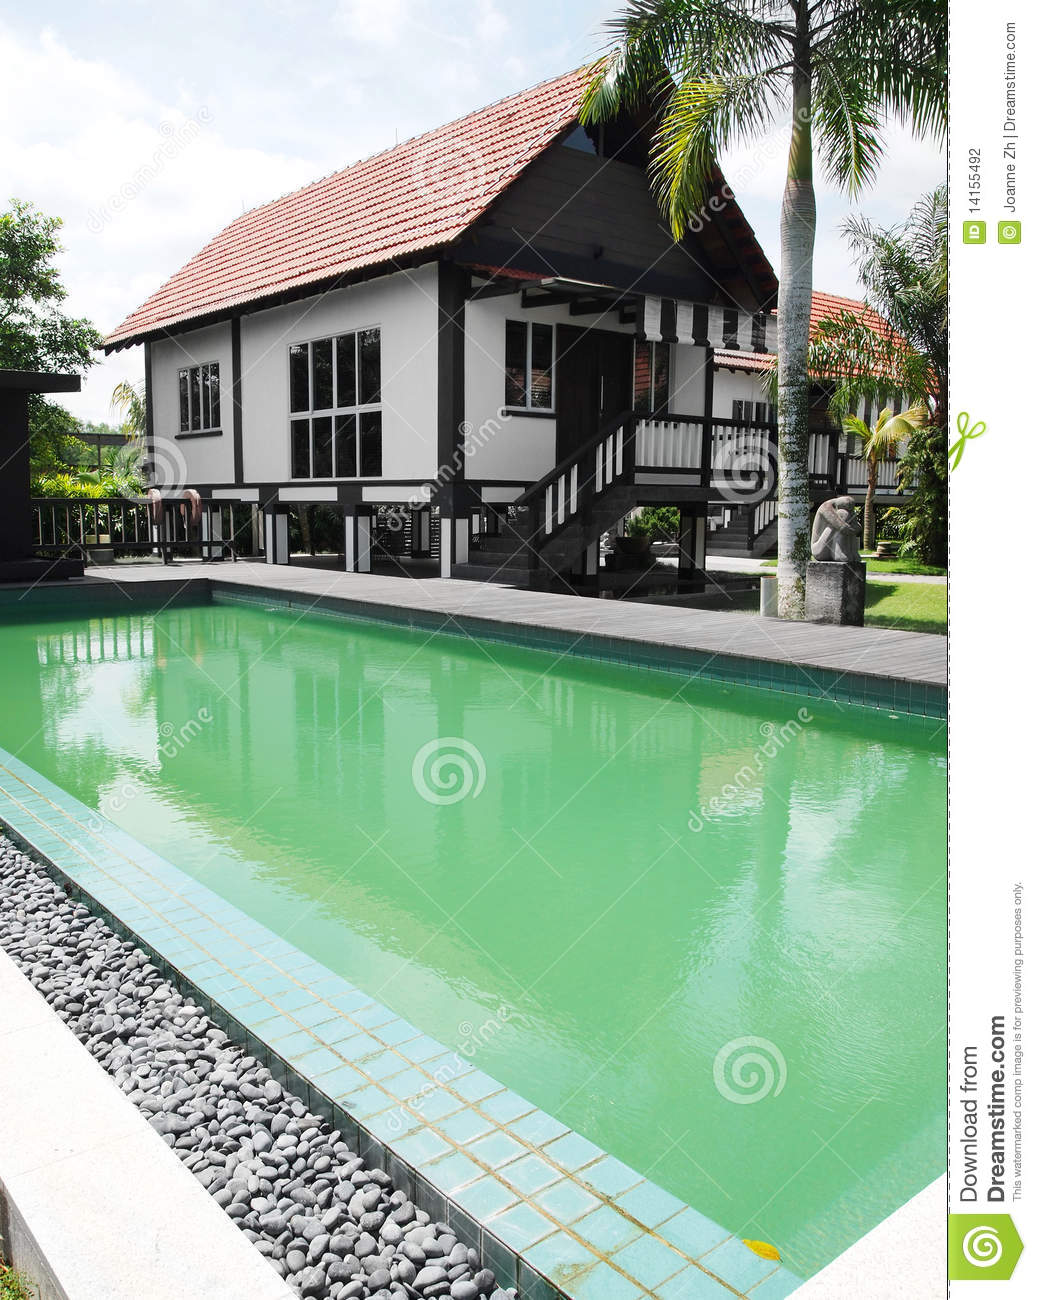 tropical house and swimming pool stock photo image of hotelsa photograph of a traditional style tropical house with beautiful landscaped gardens and green swimming pool in the yard tropical style architecture of